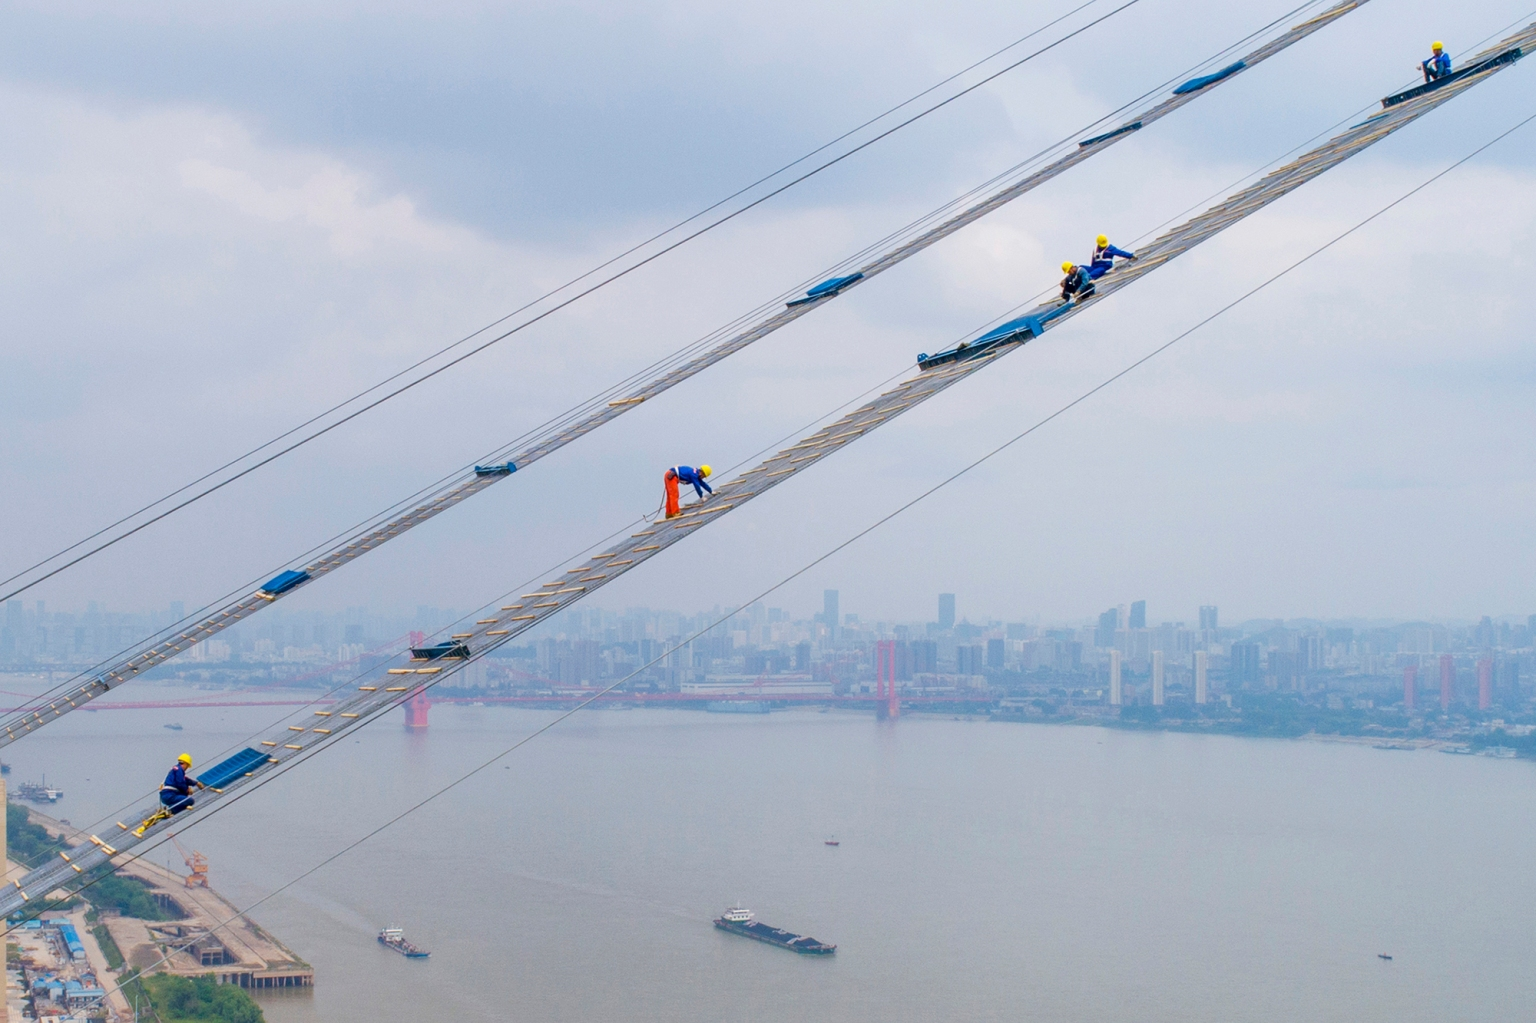 Workers labor on the construction of a double-deck suspension bridge May 8 across the Yangtze River in Wuhan, China. AFP/Getty Images